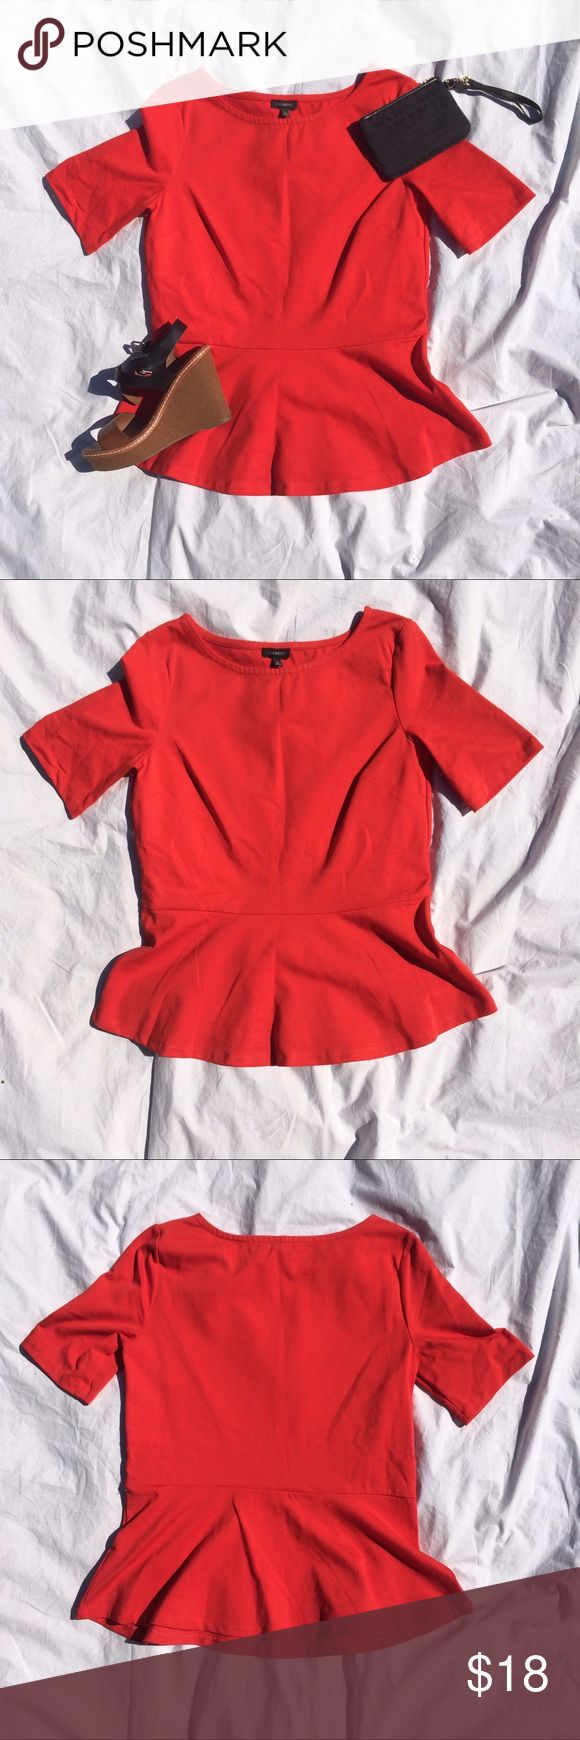 Talbots red peplum top size small Soft and chic! Great for summer! Only worn once. Talbots size small red peplum style top. Talbots Tops